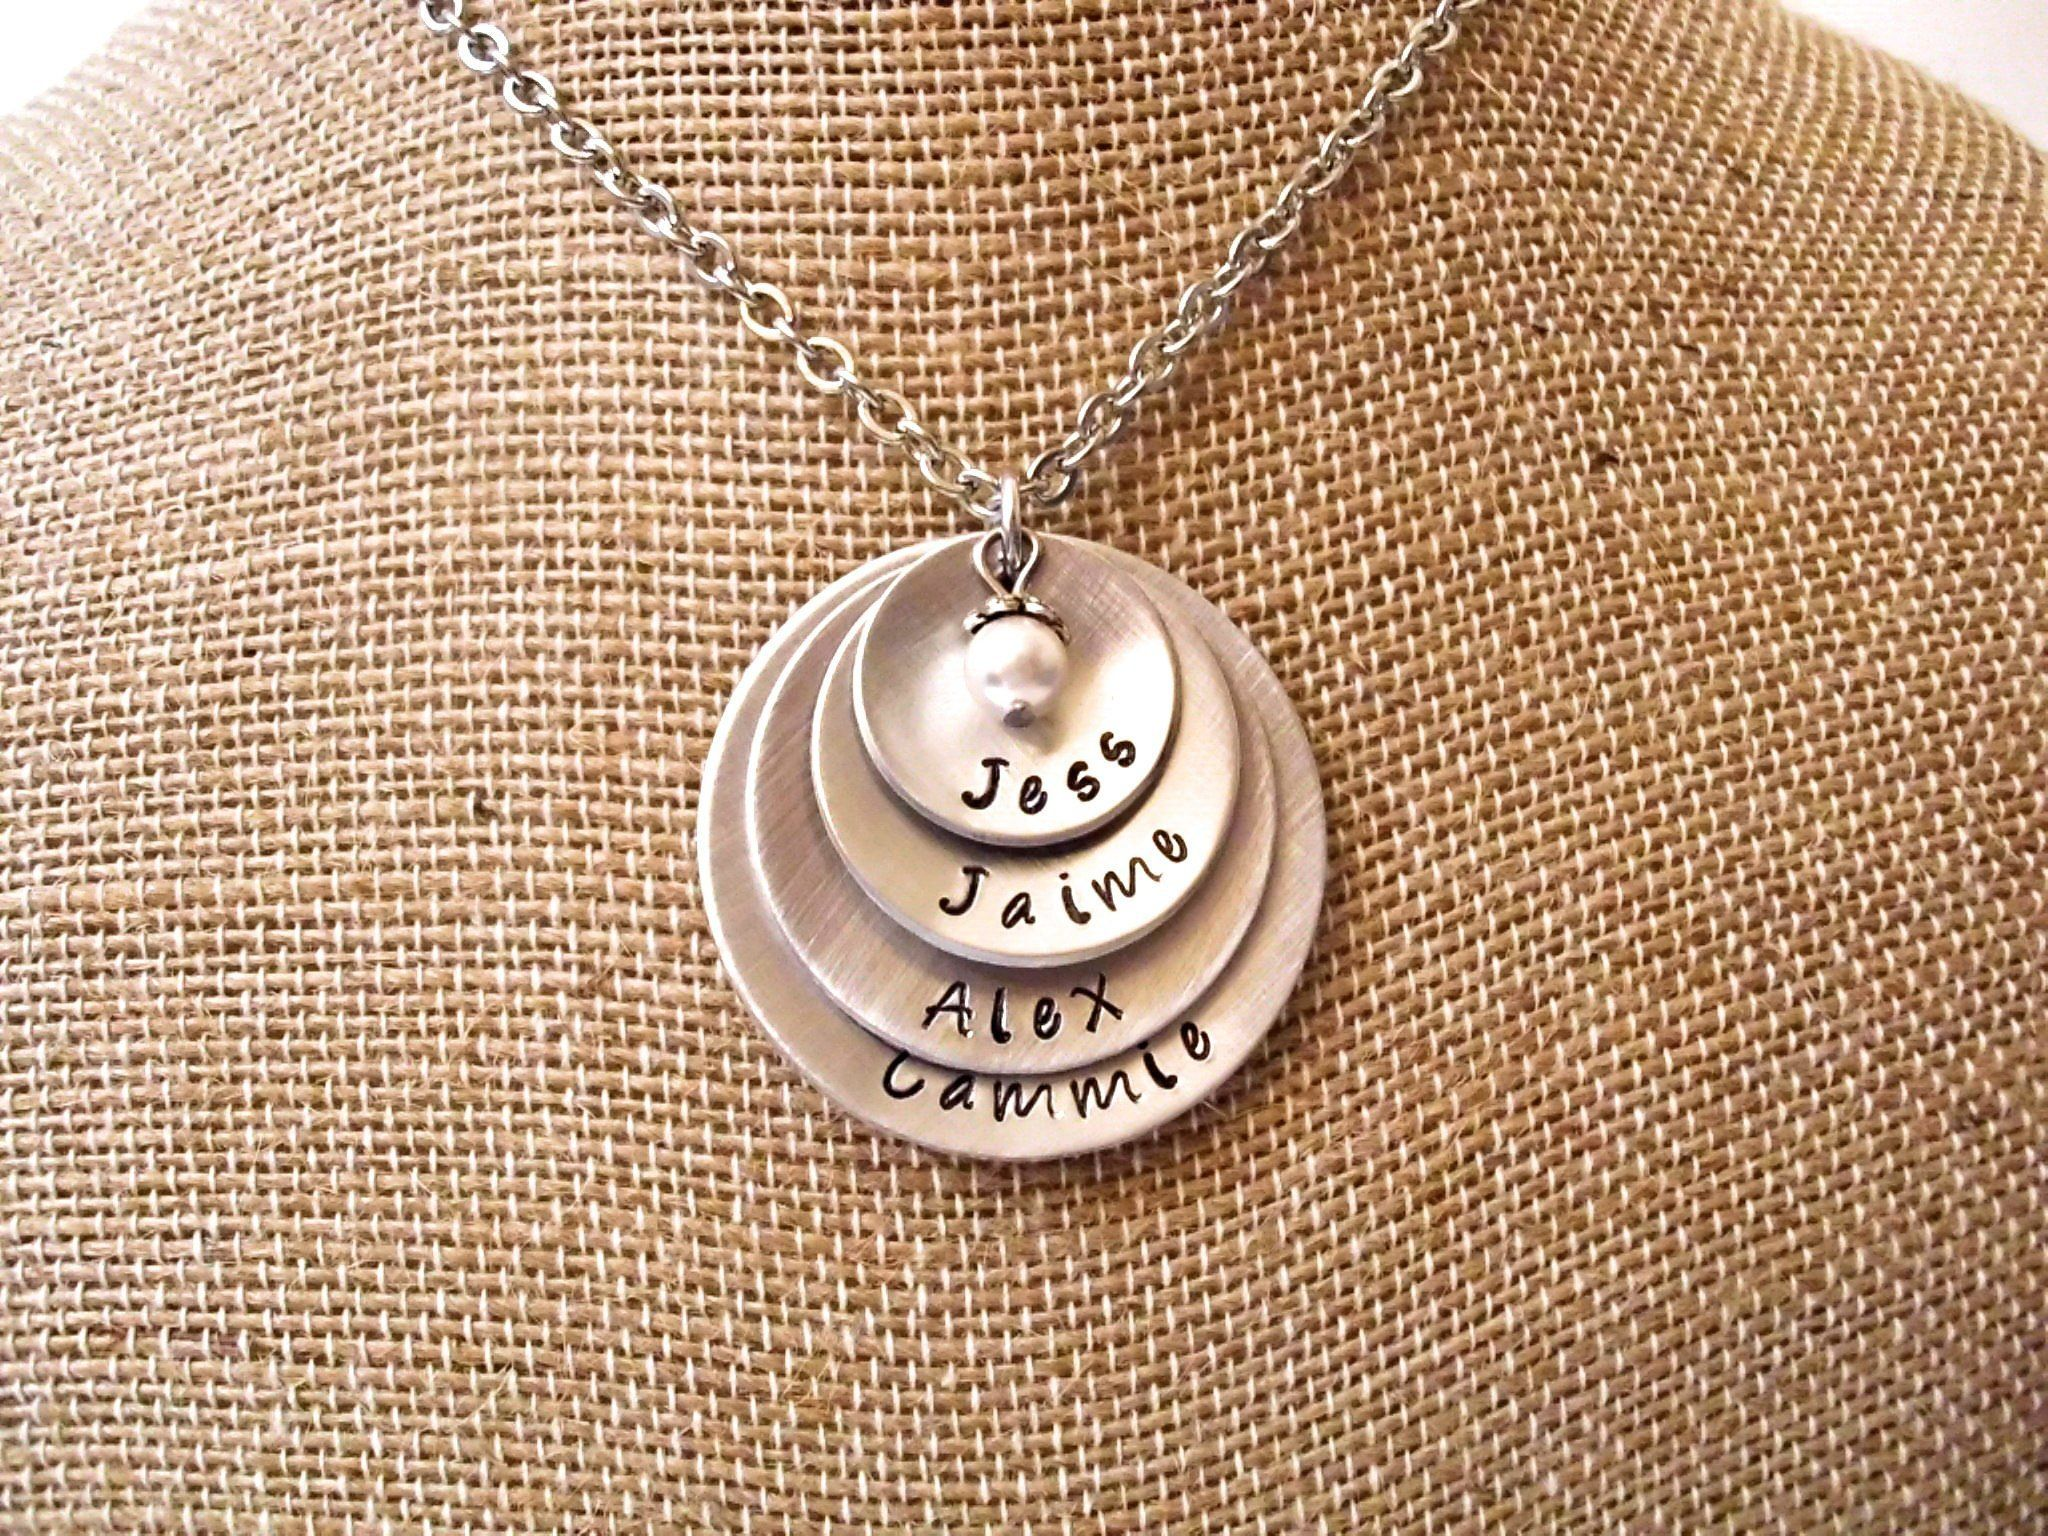 Grandmother Personalized Necklace Grandkids Personalized Name Washer Necklace